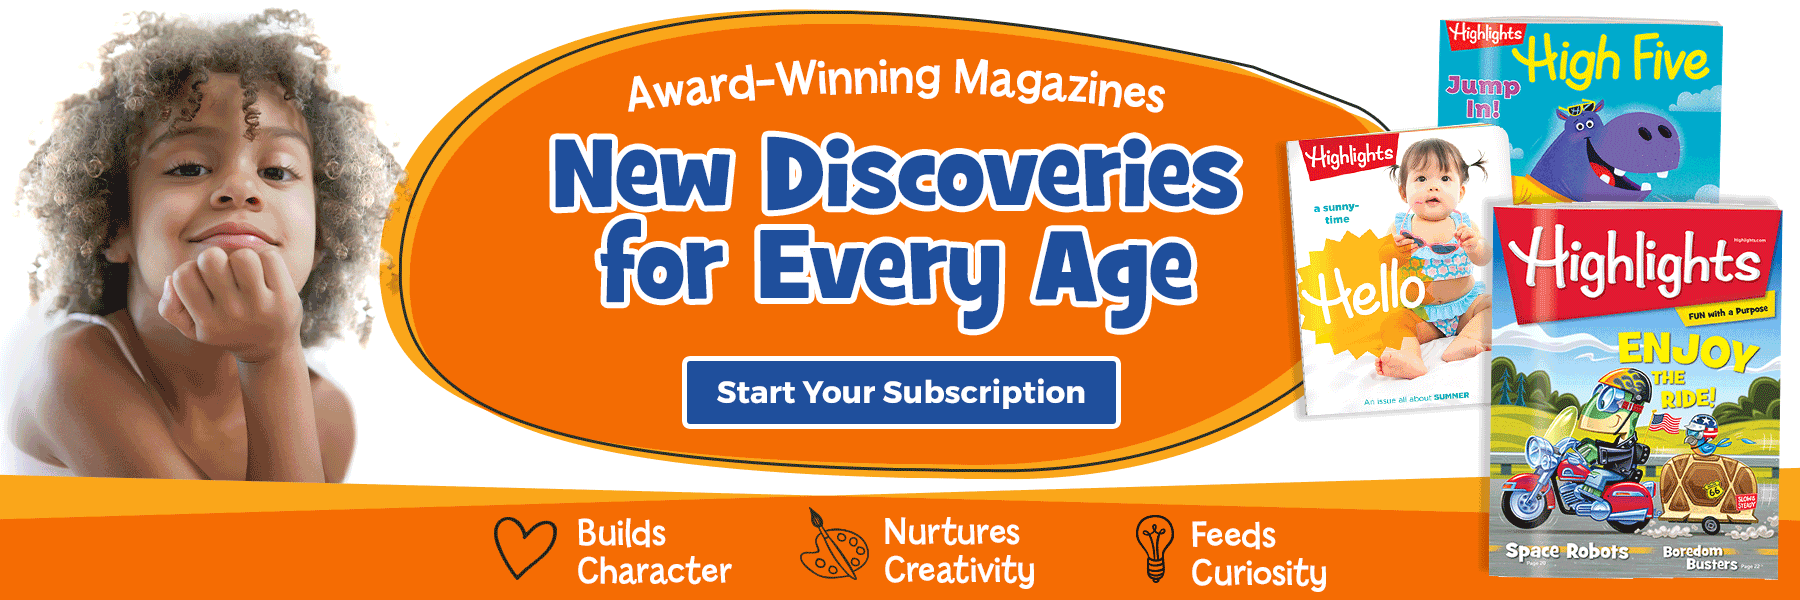 Our award-winning magazines offer new discoveries for every age – start your subscription today!